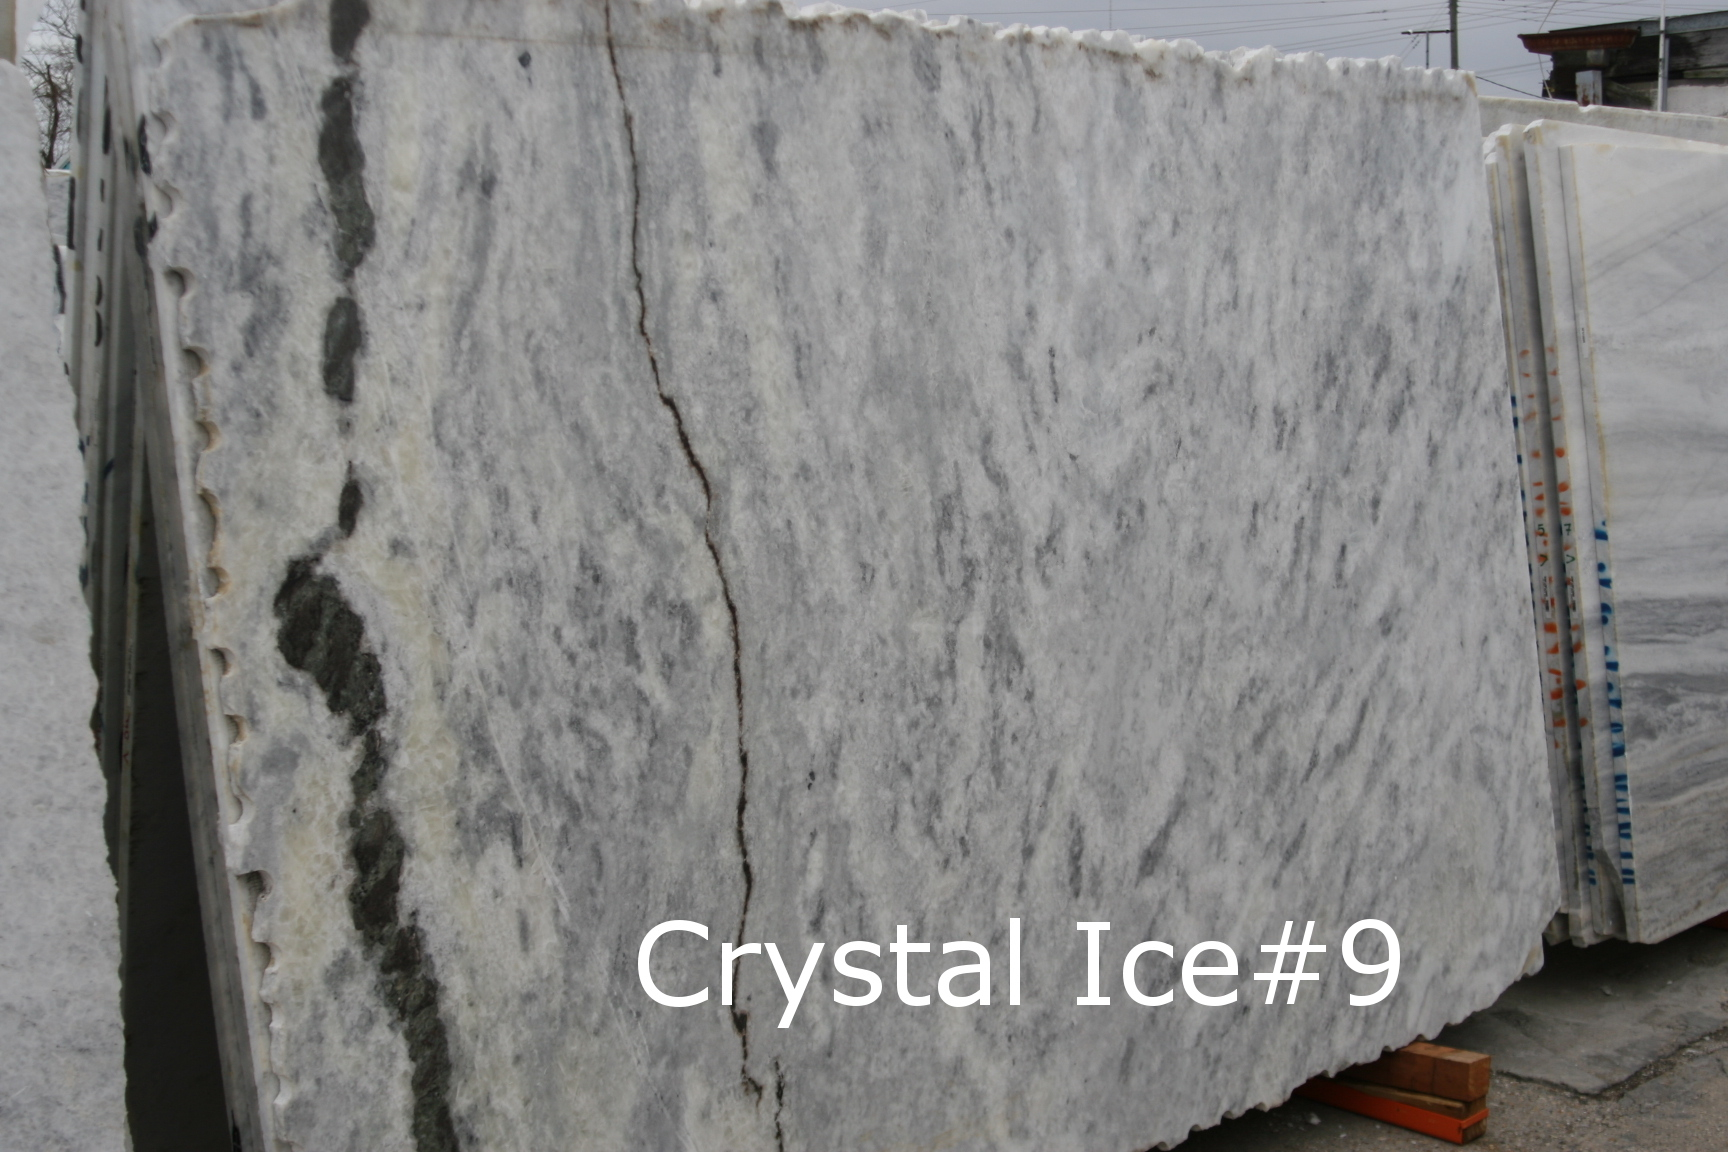 Crystal Ice #9